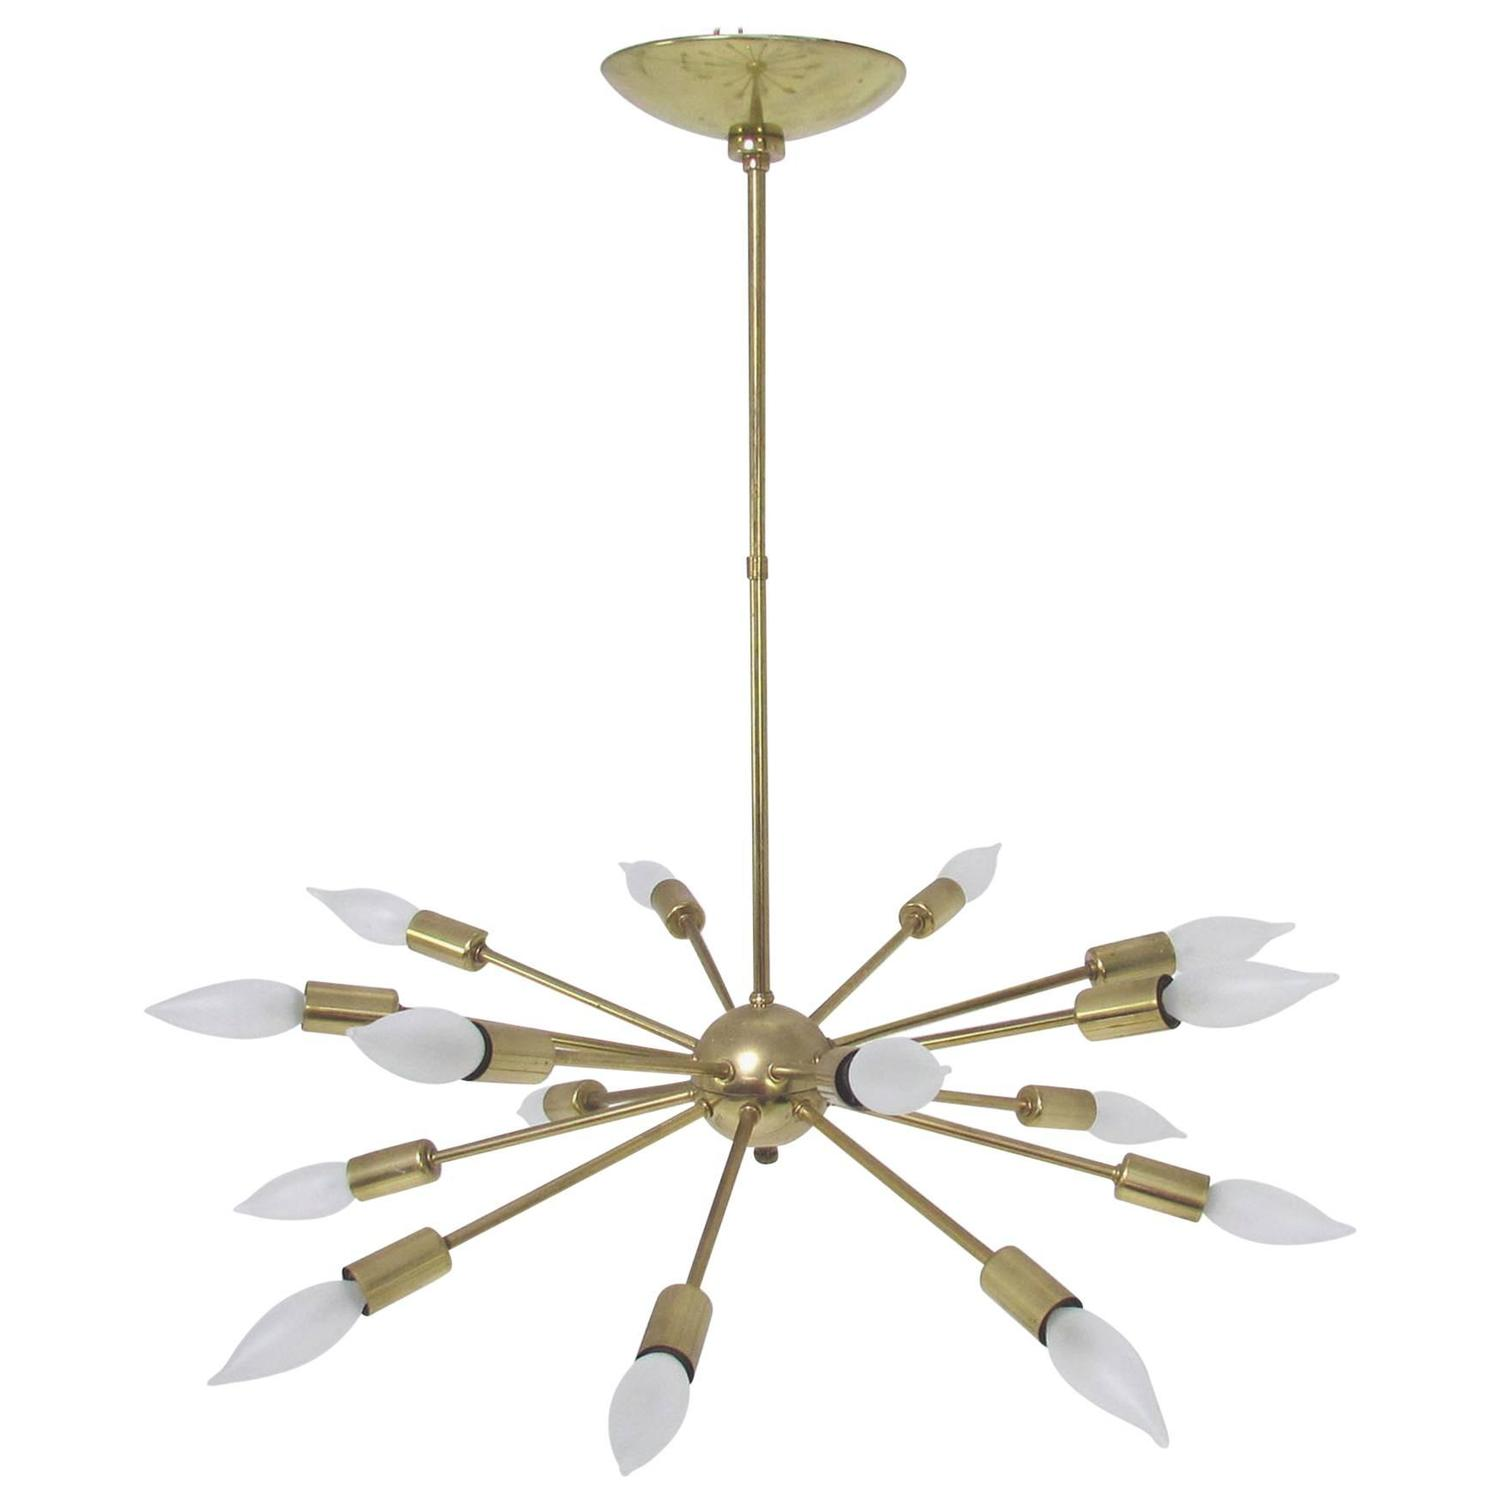 original sputnik chandelier light fixture in brass with. Black Bedroom Furniture Sets. Home Design Ideas